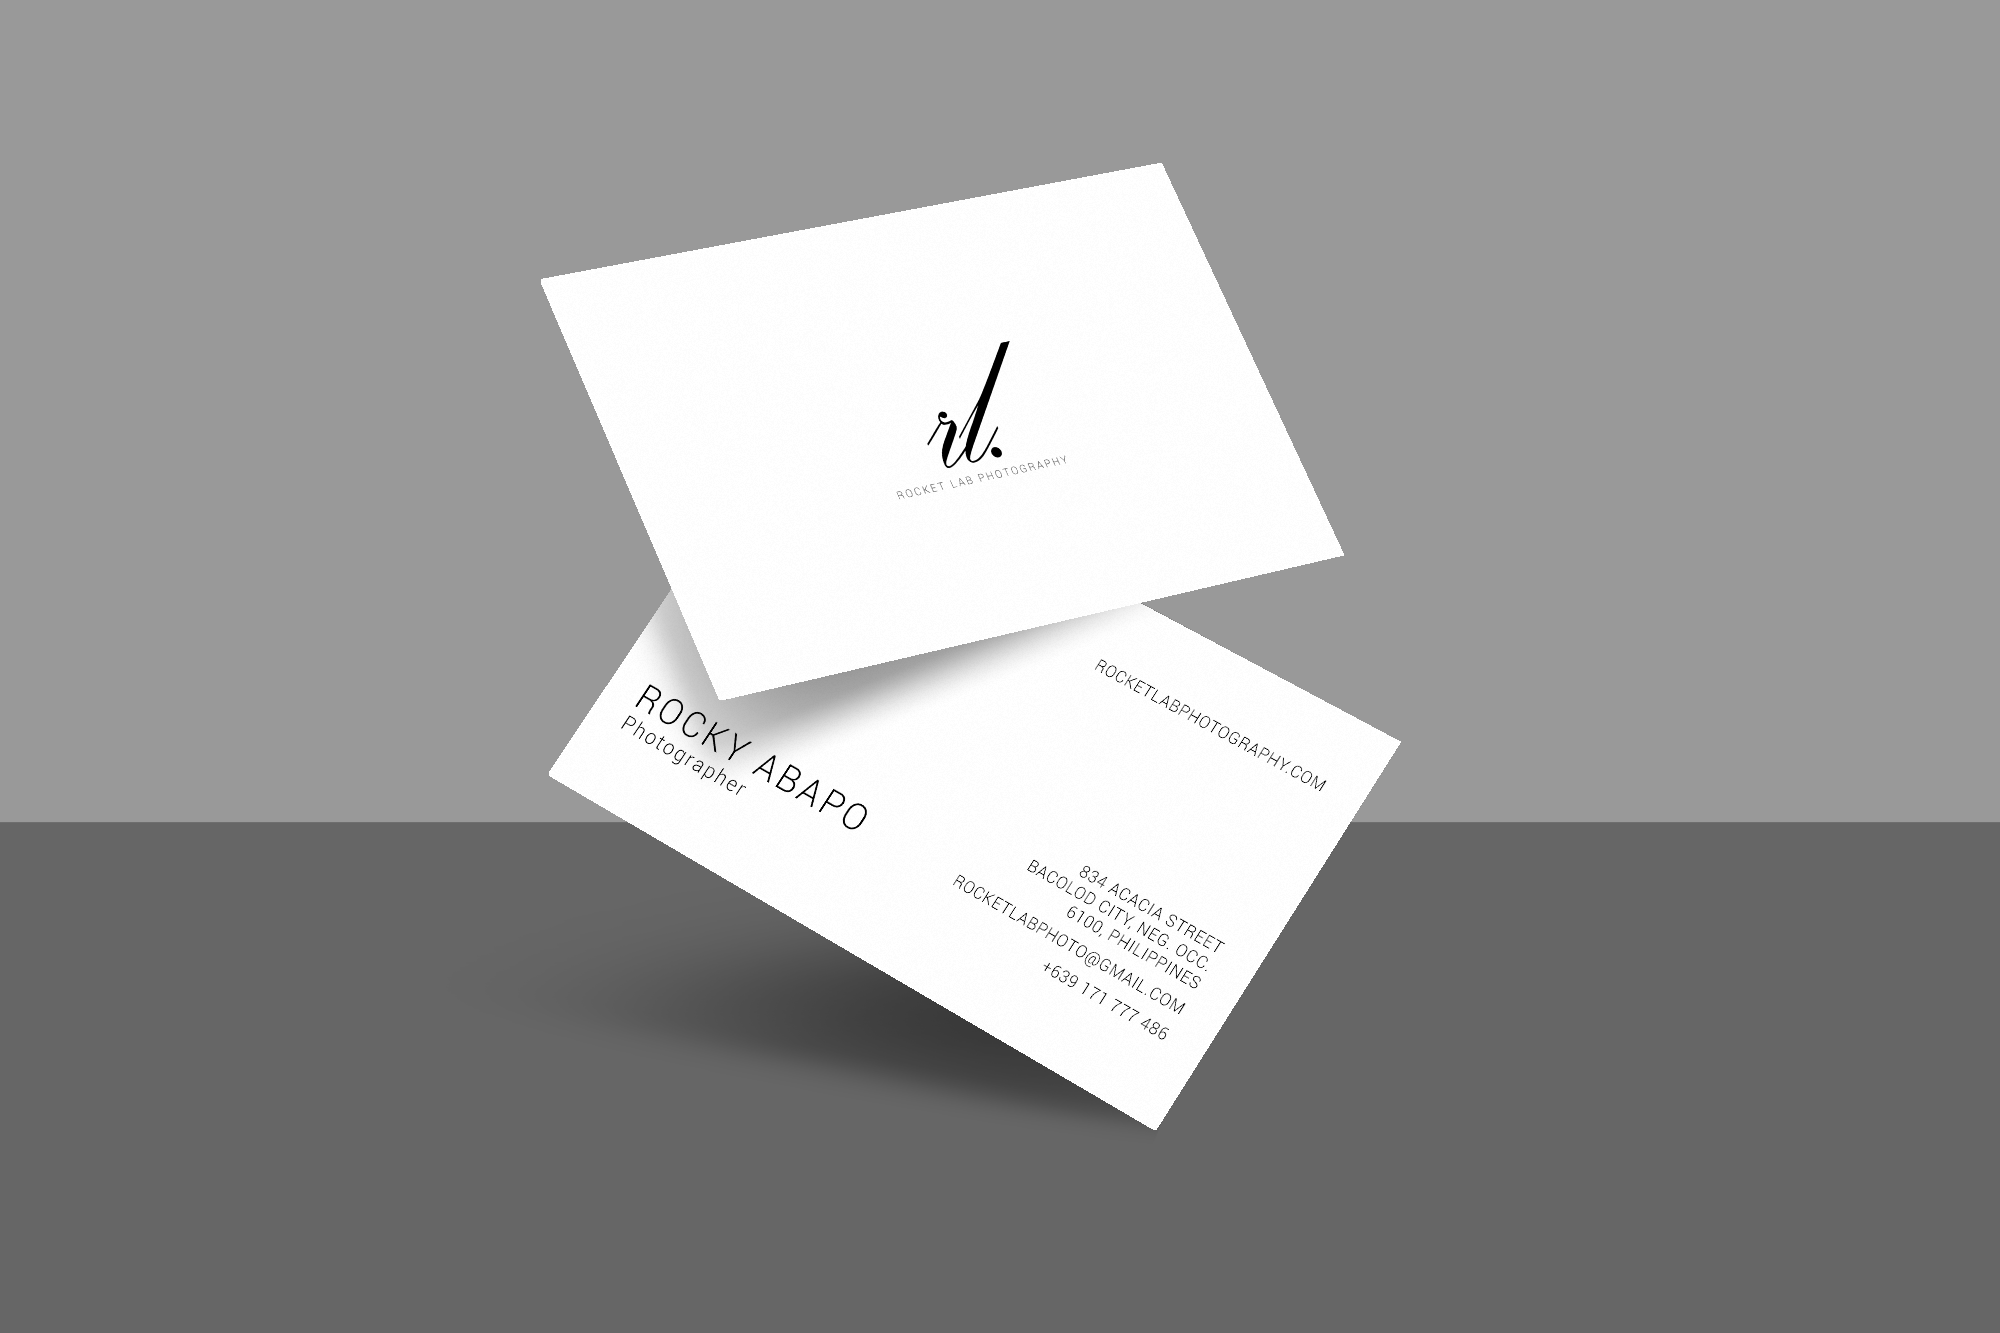 Minimal Business Card Design - Satisfaction Guaranteed